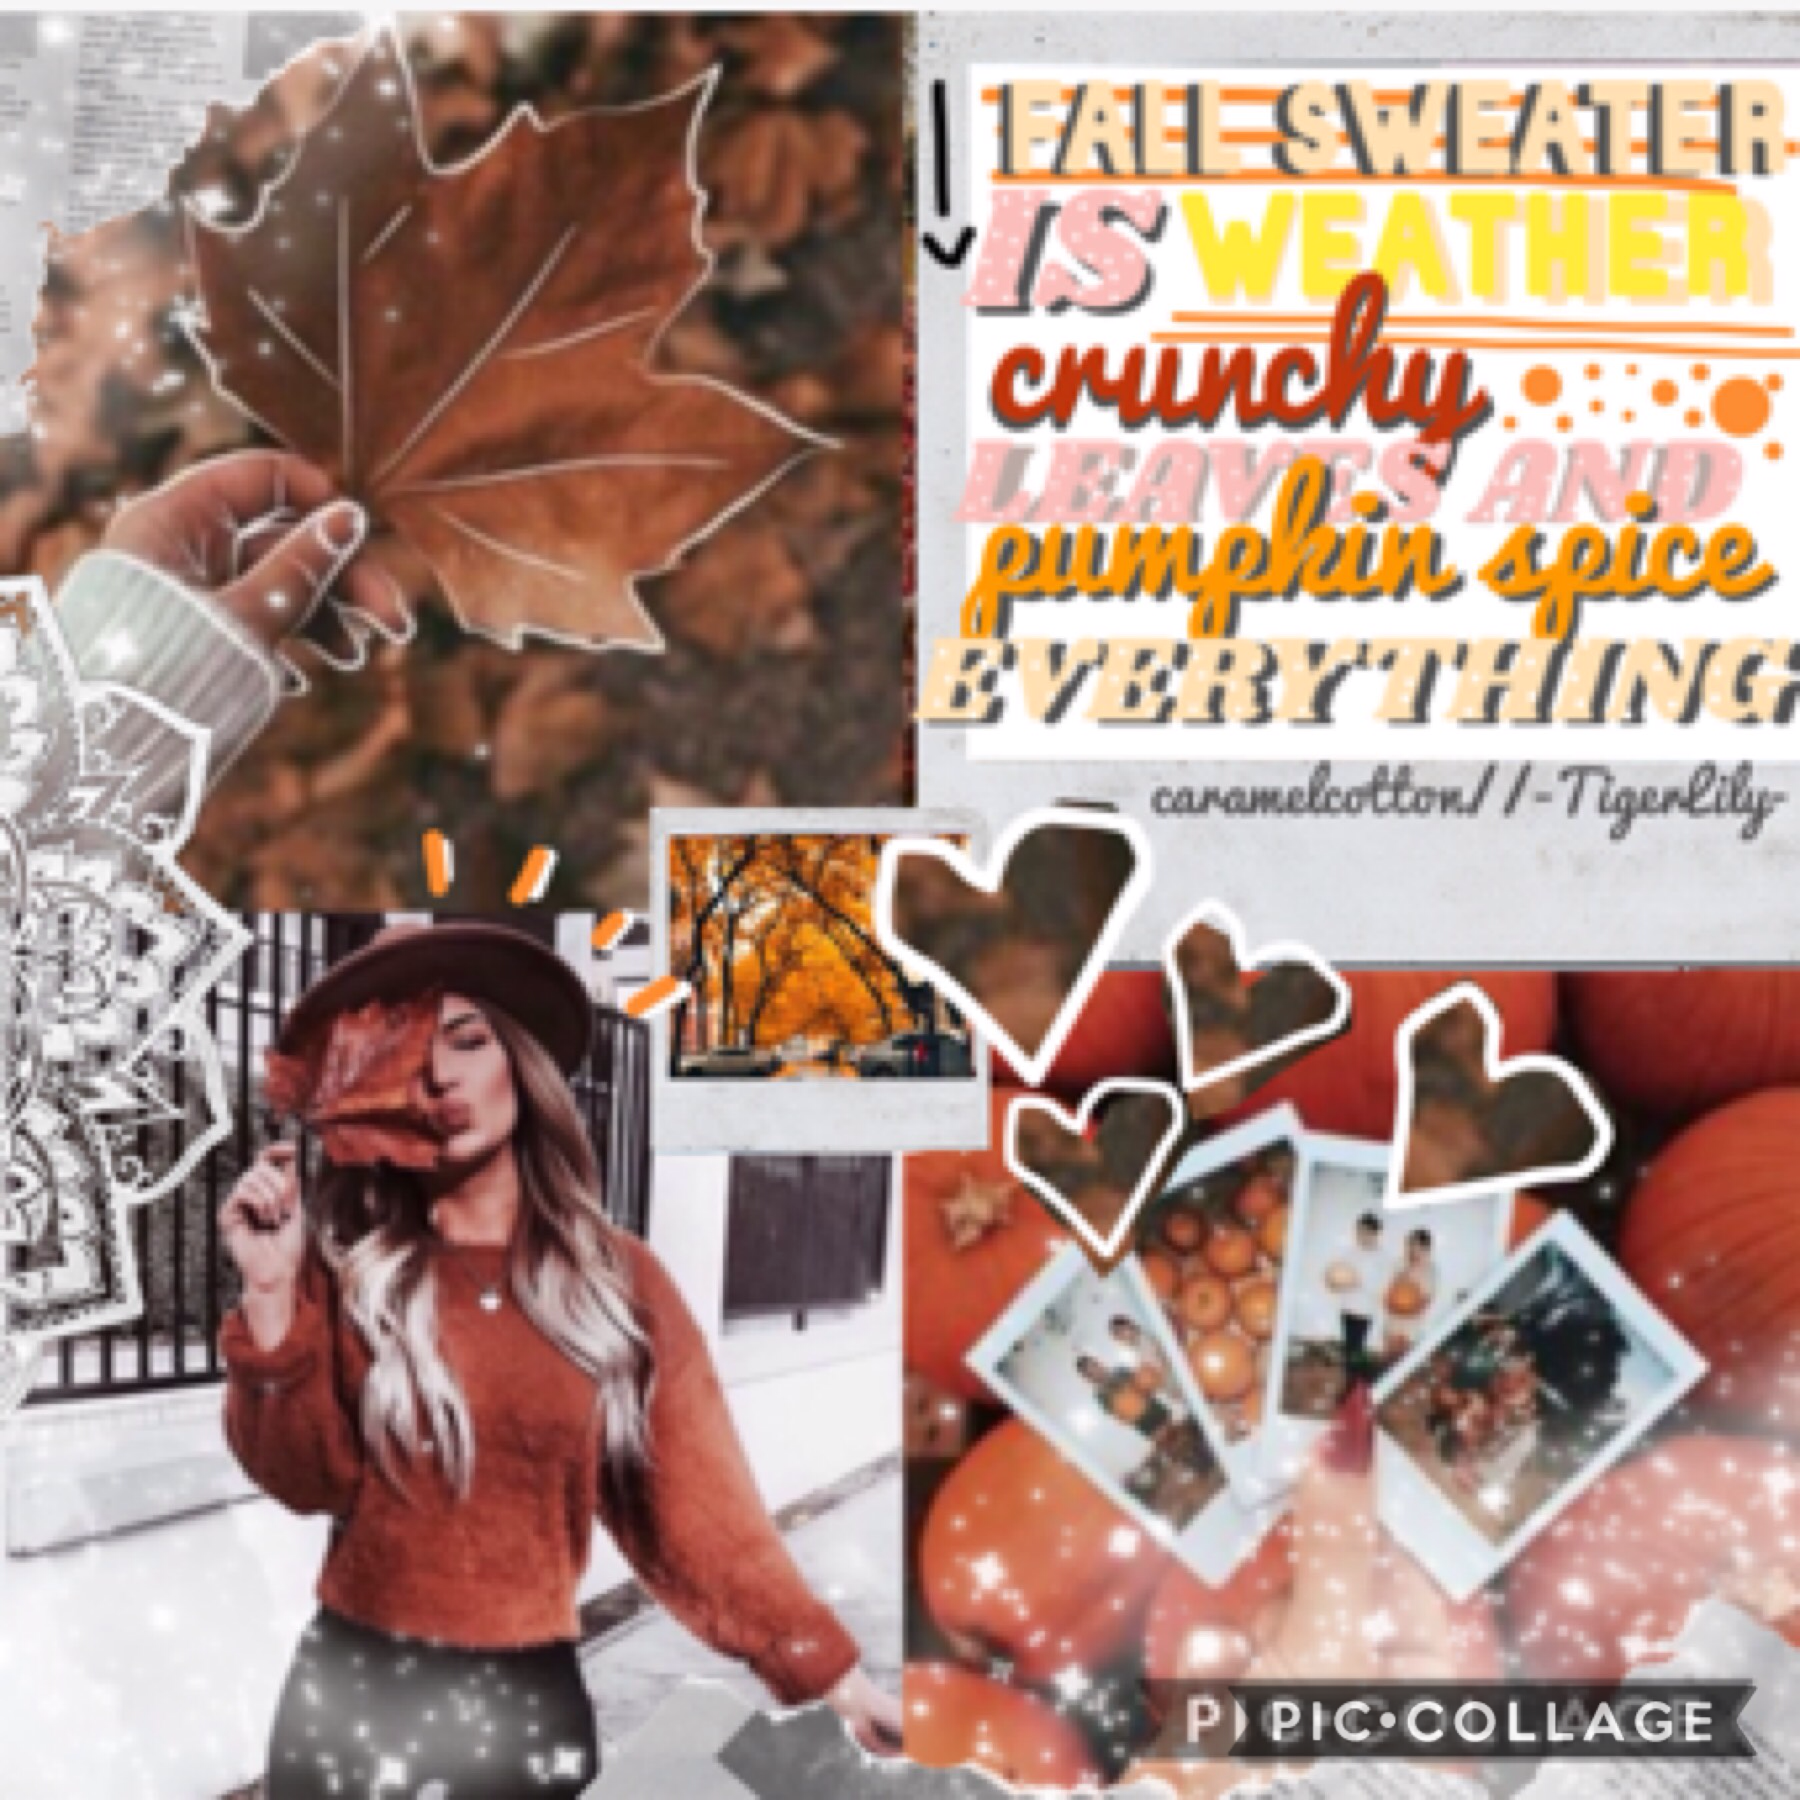 🌷collab with....🌷 -TigerLily-! She chose quote and I did background and text 💞  Did 11km walk legs are falling off 😴  qotd: are you dressing up 4 Halloween? aotd: yes as a clown 🎈  sotd: -TigerLily- 🐯